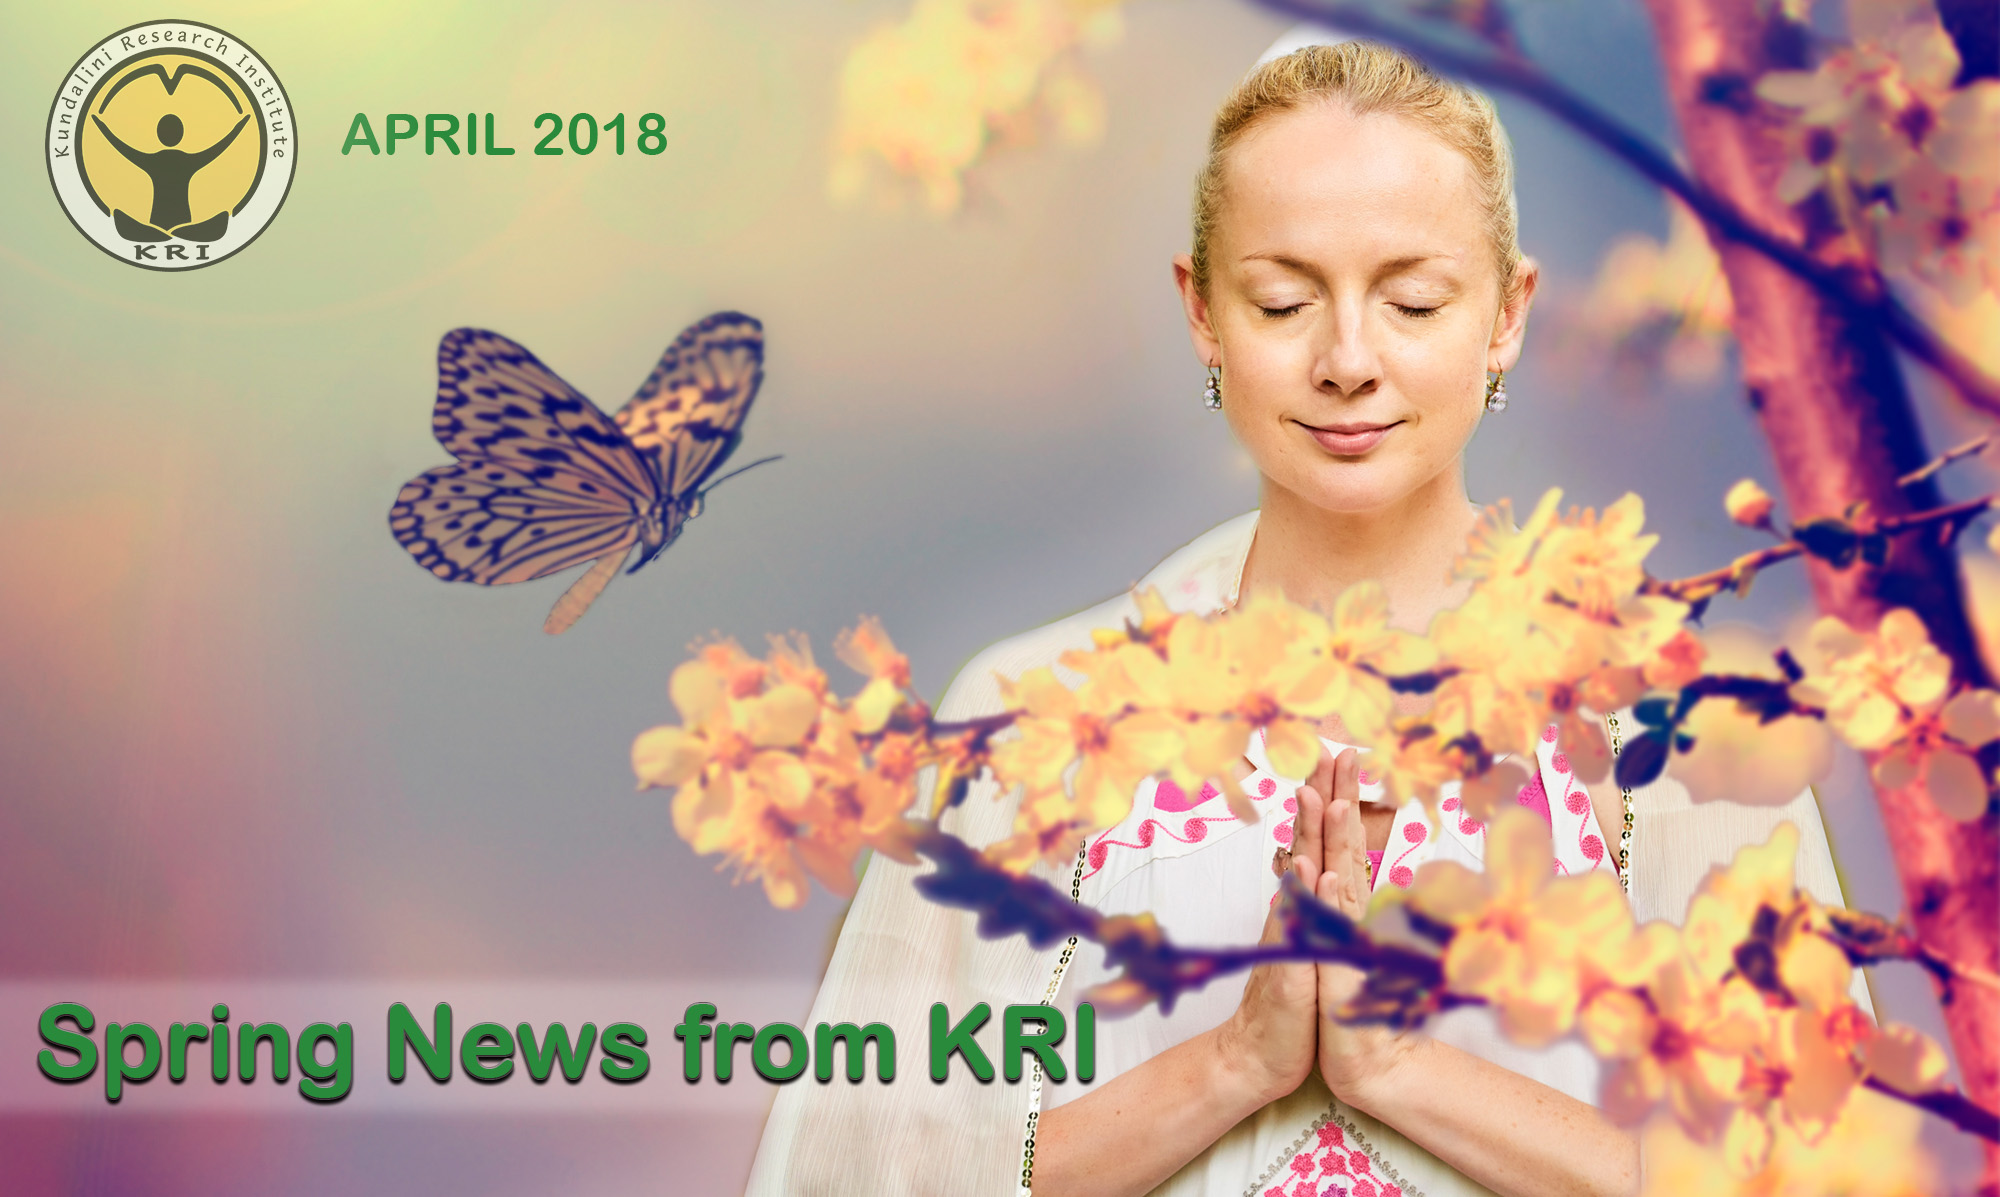 KRI April Newsletter